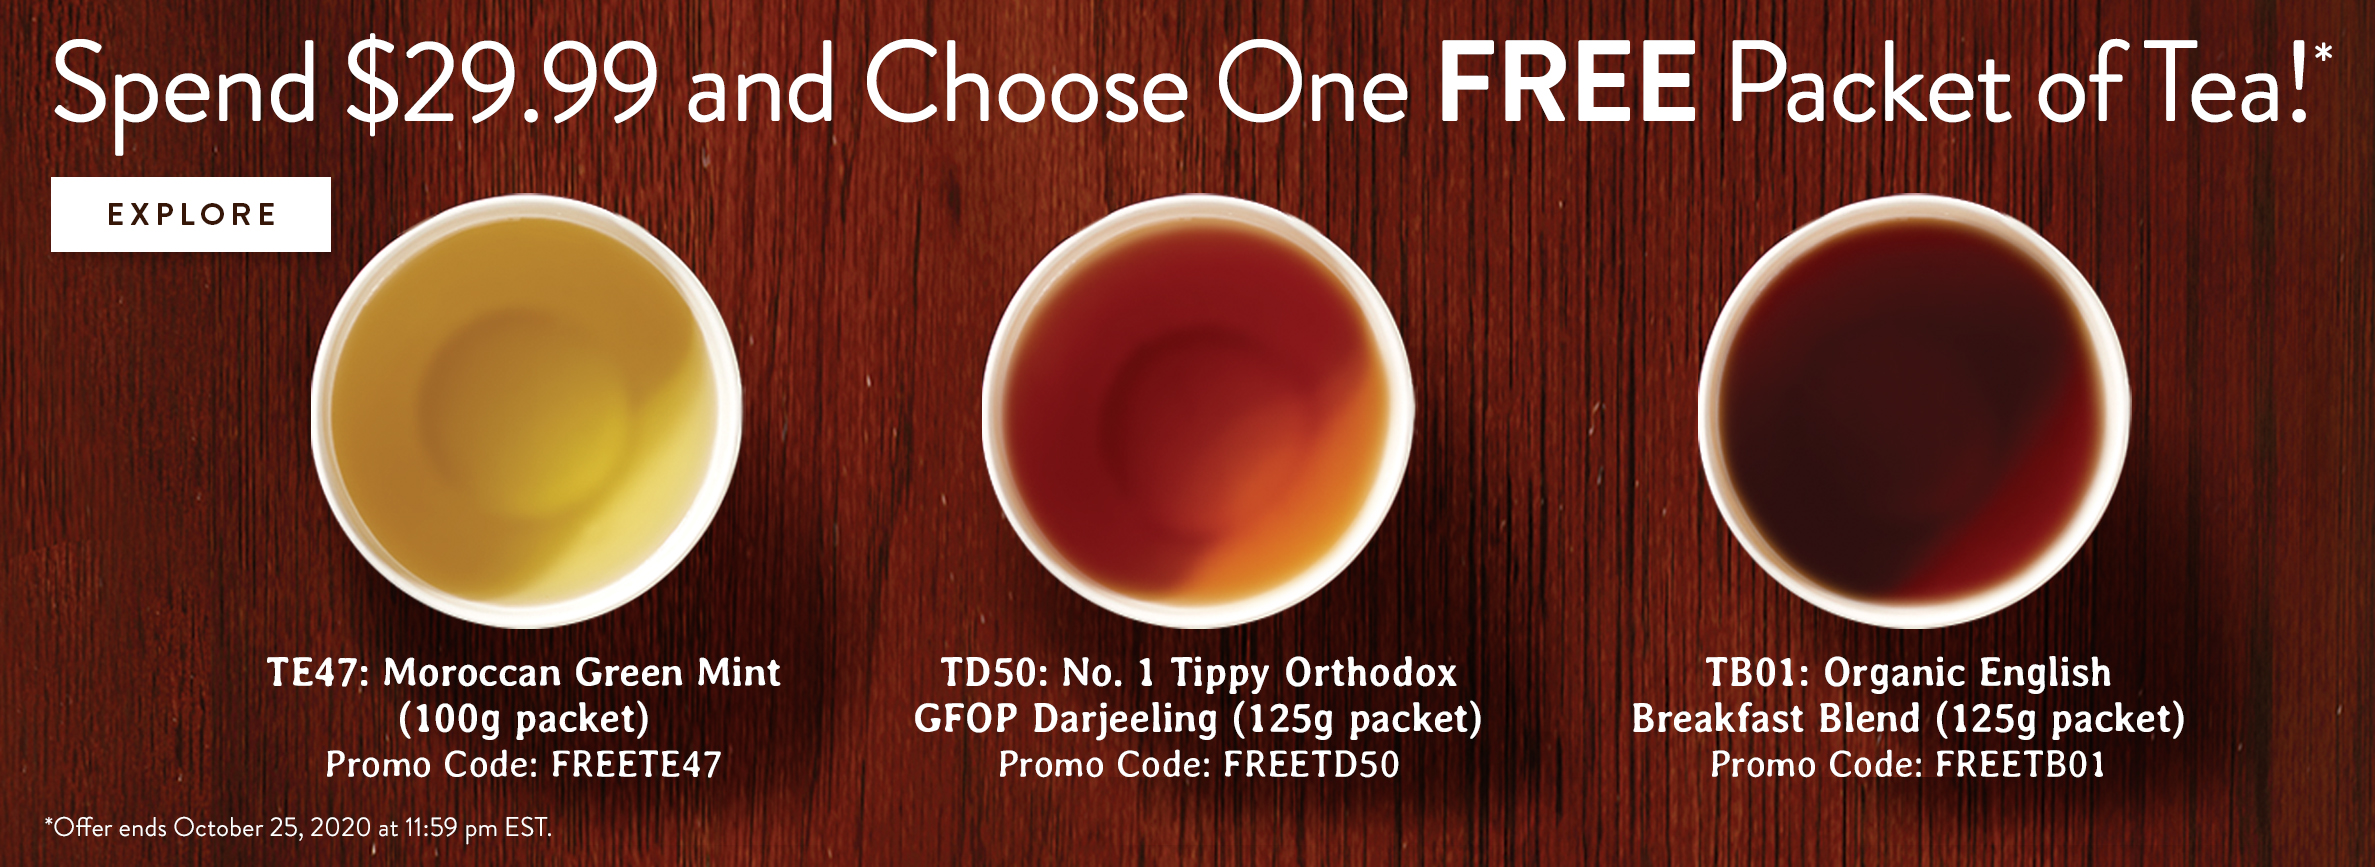 Free Tea with $29.99 Purchase